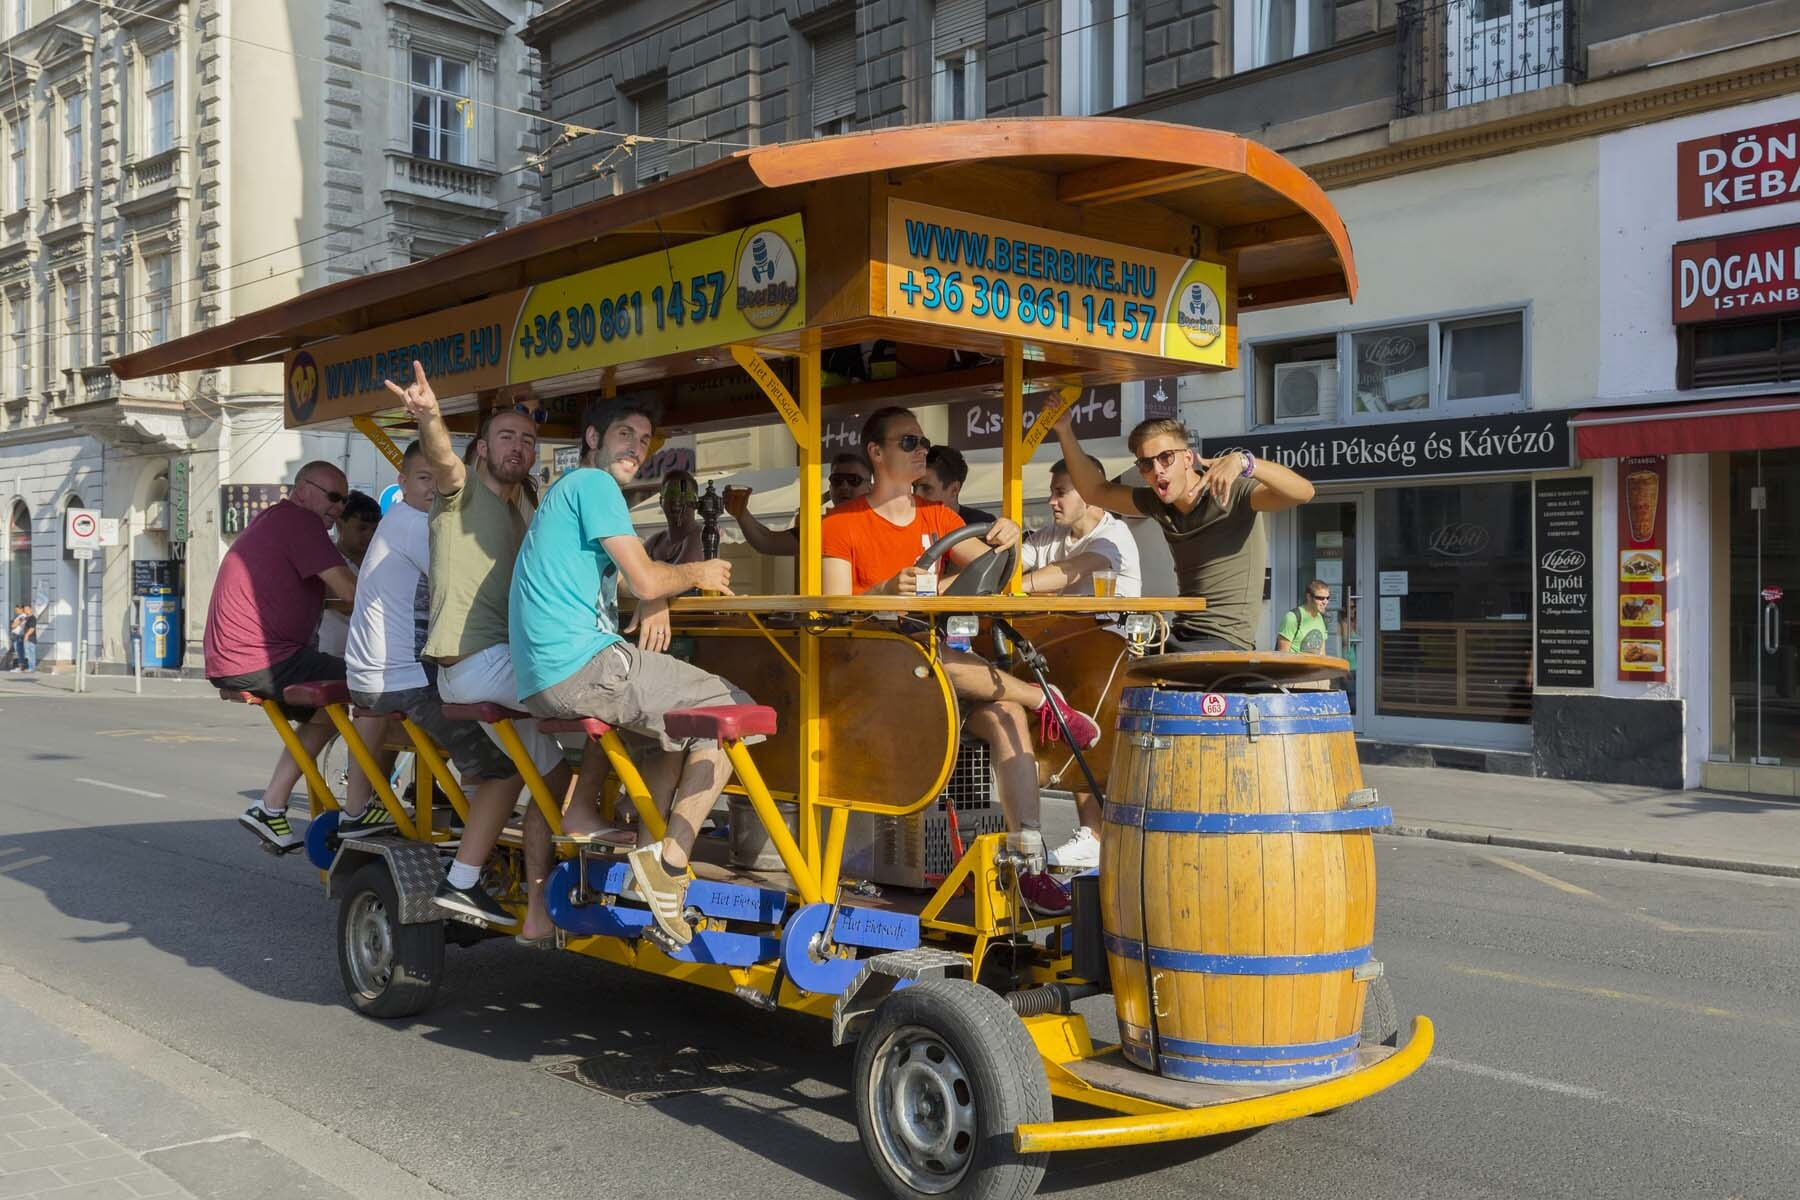 Stag party on a beer bike in Budapest